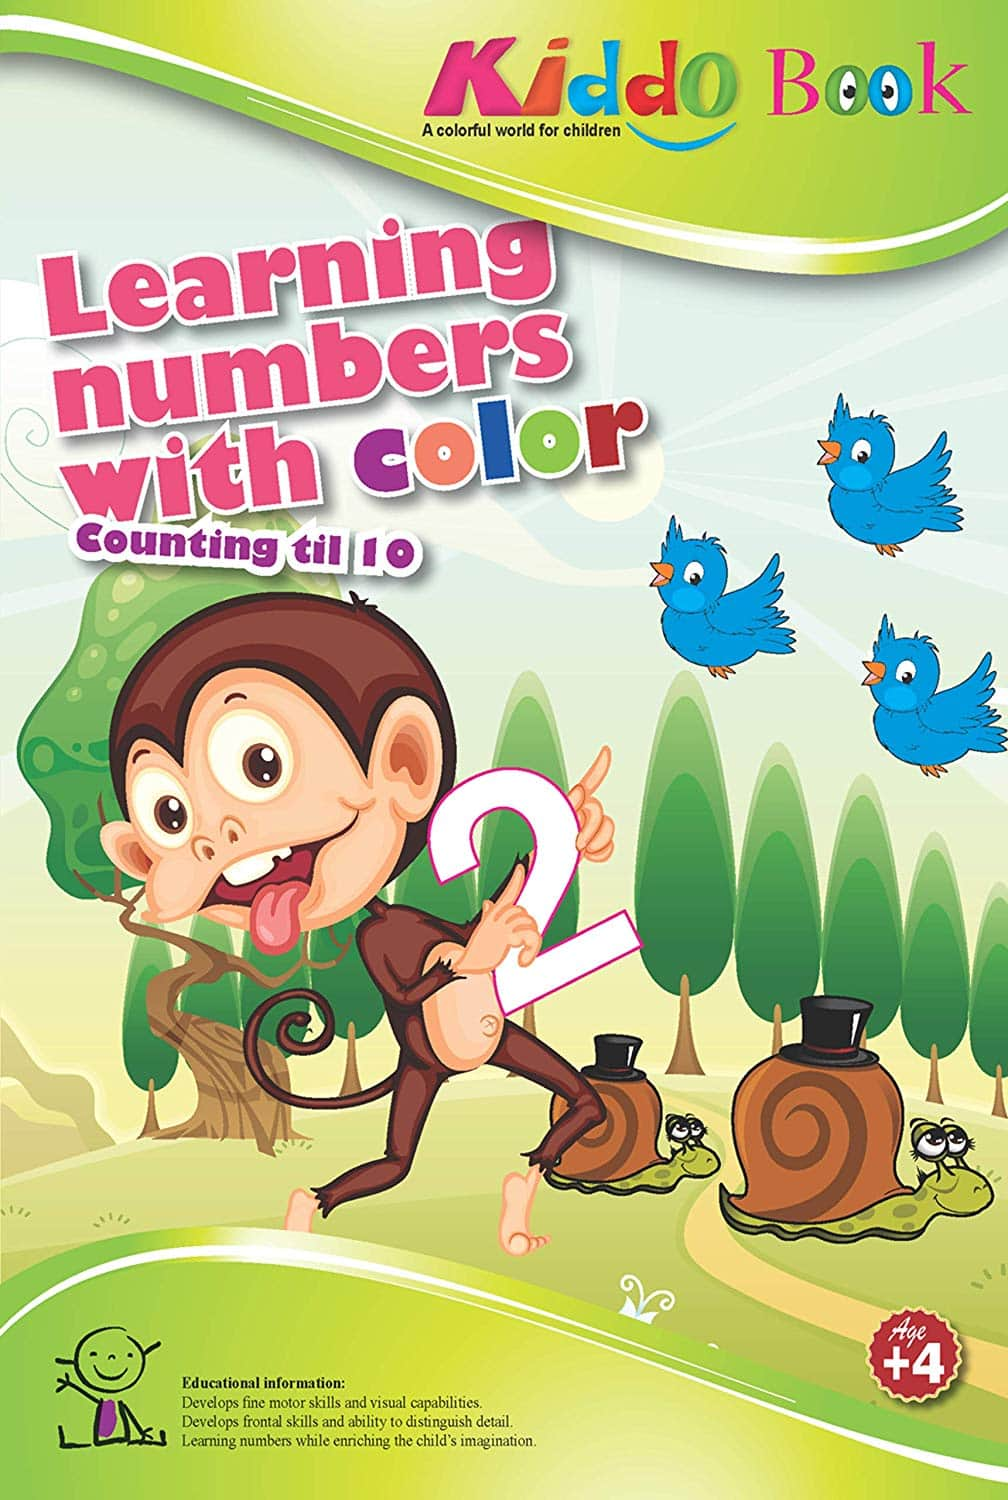 Kiddo Books: My First ABC Booklet or Learning Numbers w/ Color Booklet $0.83 each + Free Prime Shipping